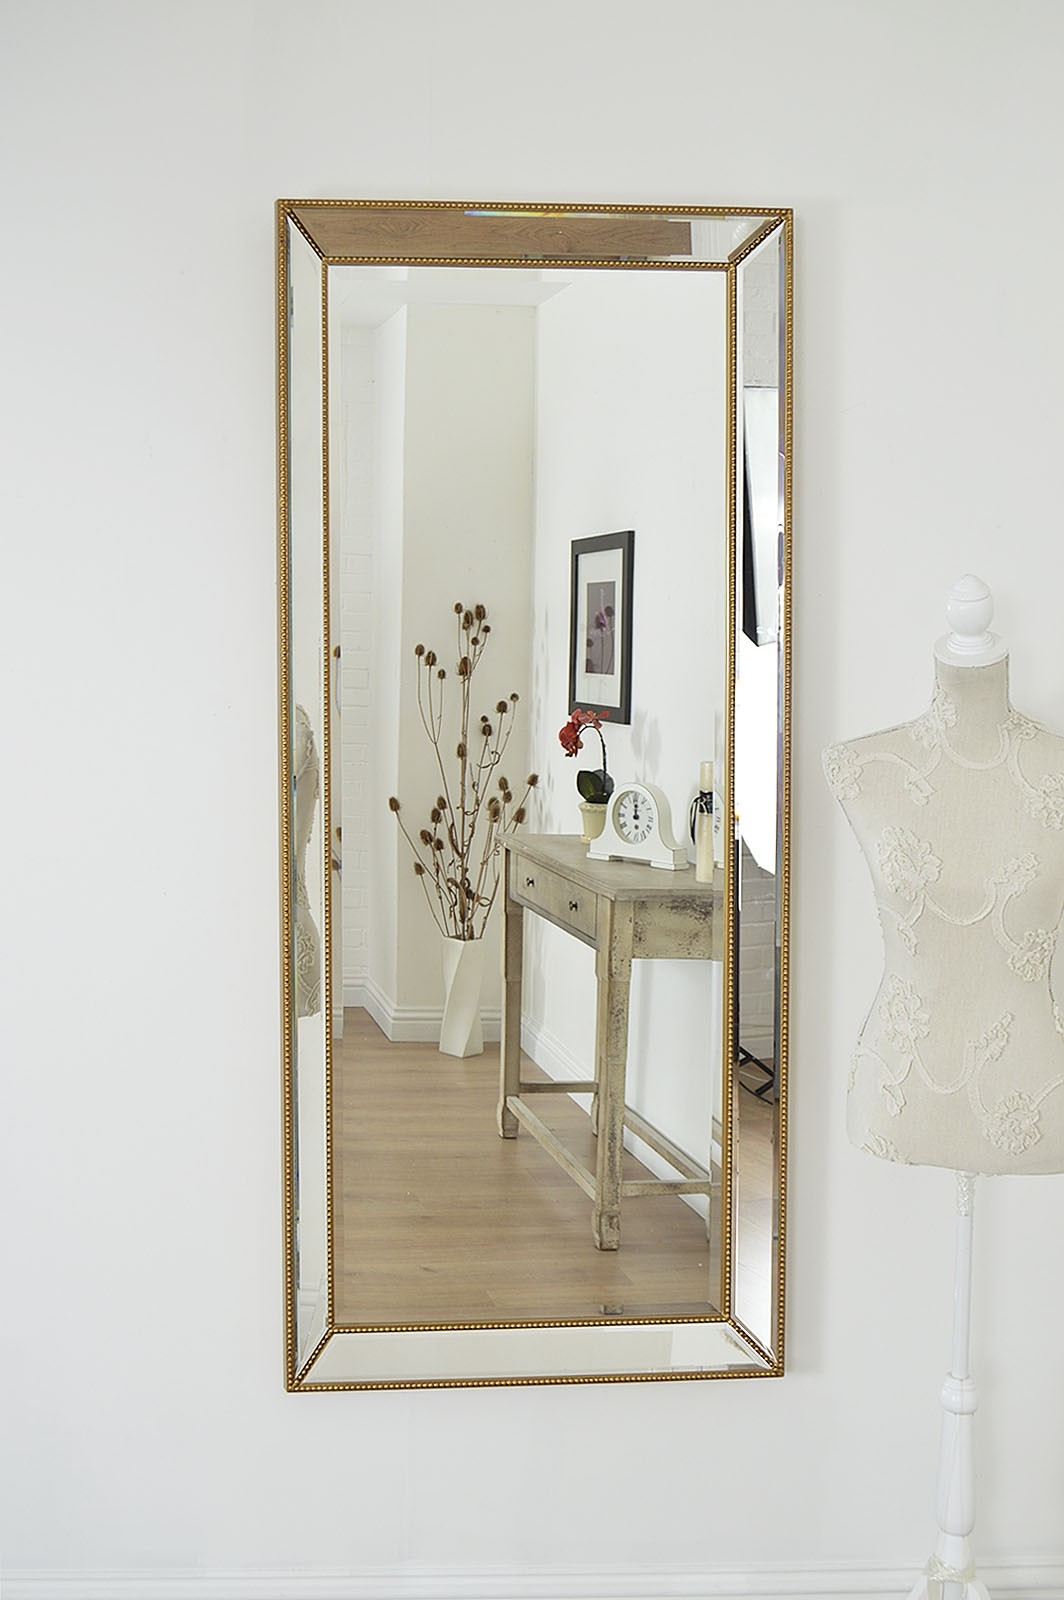 Venetianframeless Mirrors Category With Regard To Venetian Wall Mirror (Image 15 of 15)